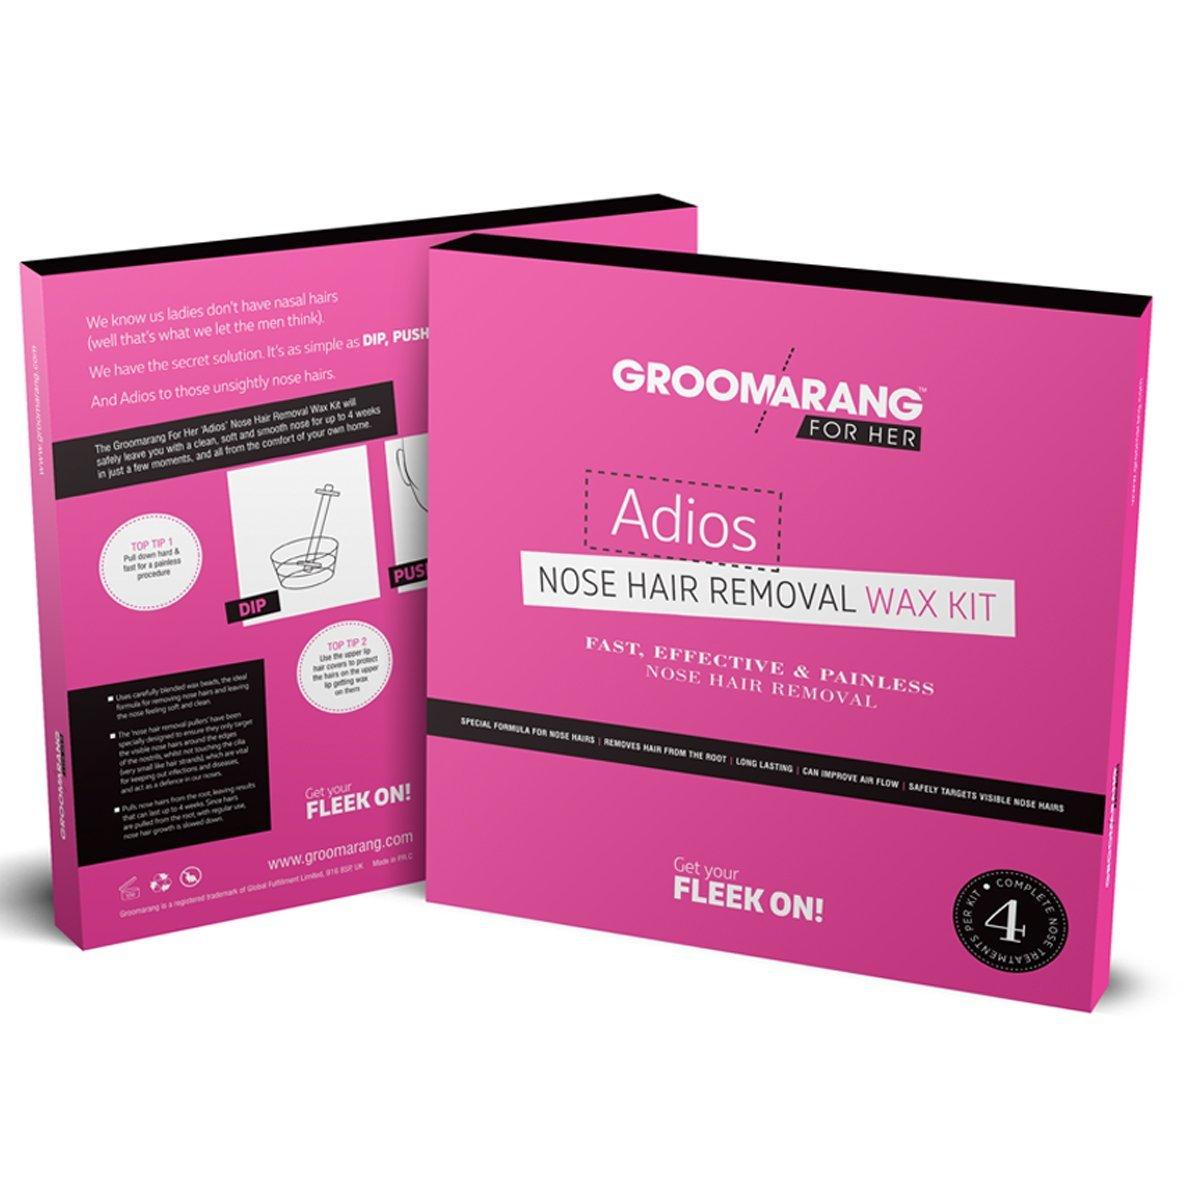 Groomarang For Her- Adios Nose Hair Removal Wax Kit For Her, Hair Removal by Beauty Pop Cosmetics